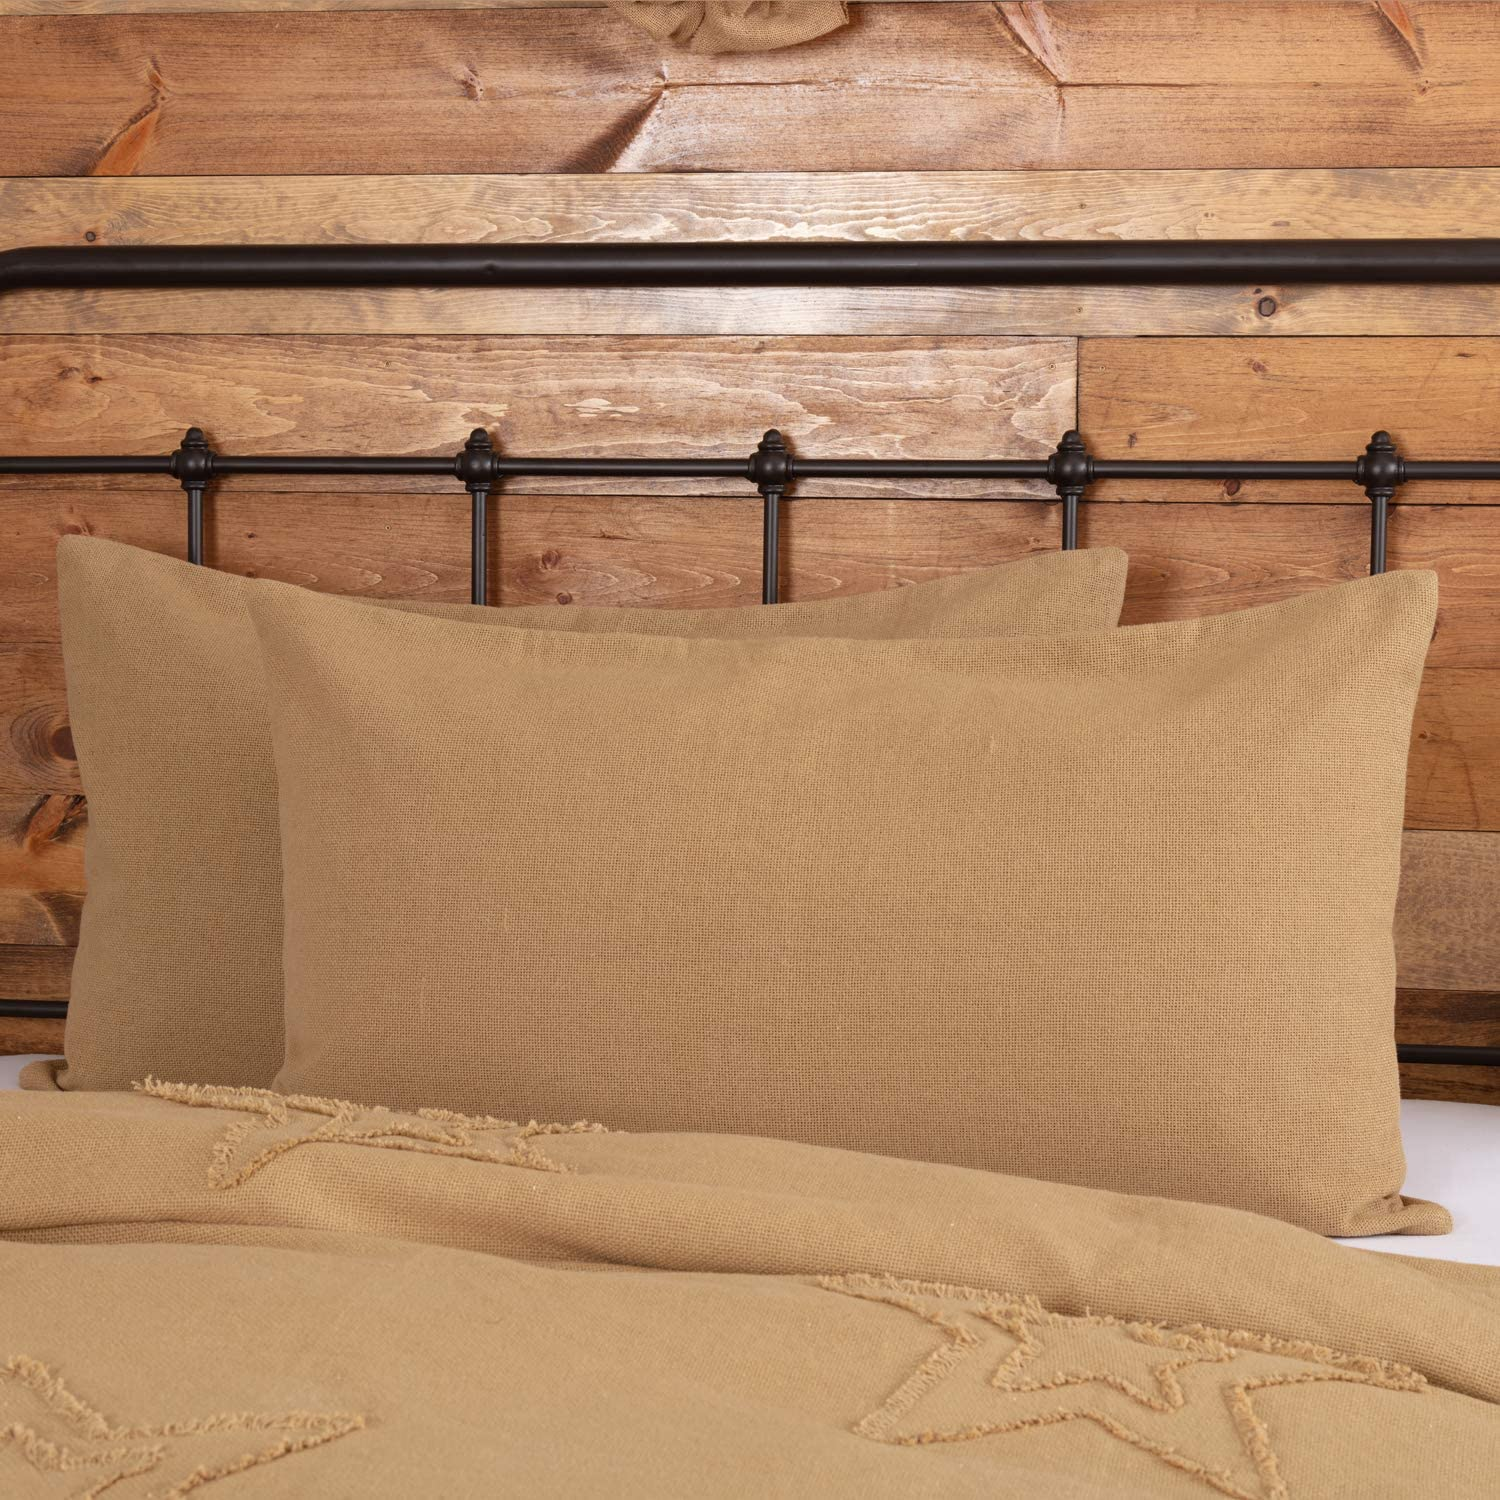 VHC Brands Burlap Natural Bedding Accessory, King Sham 21x37, Tan